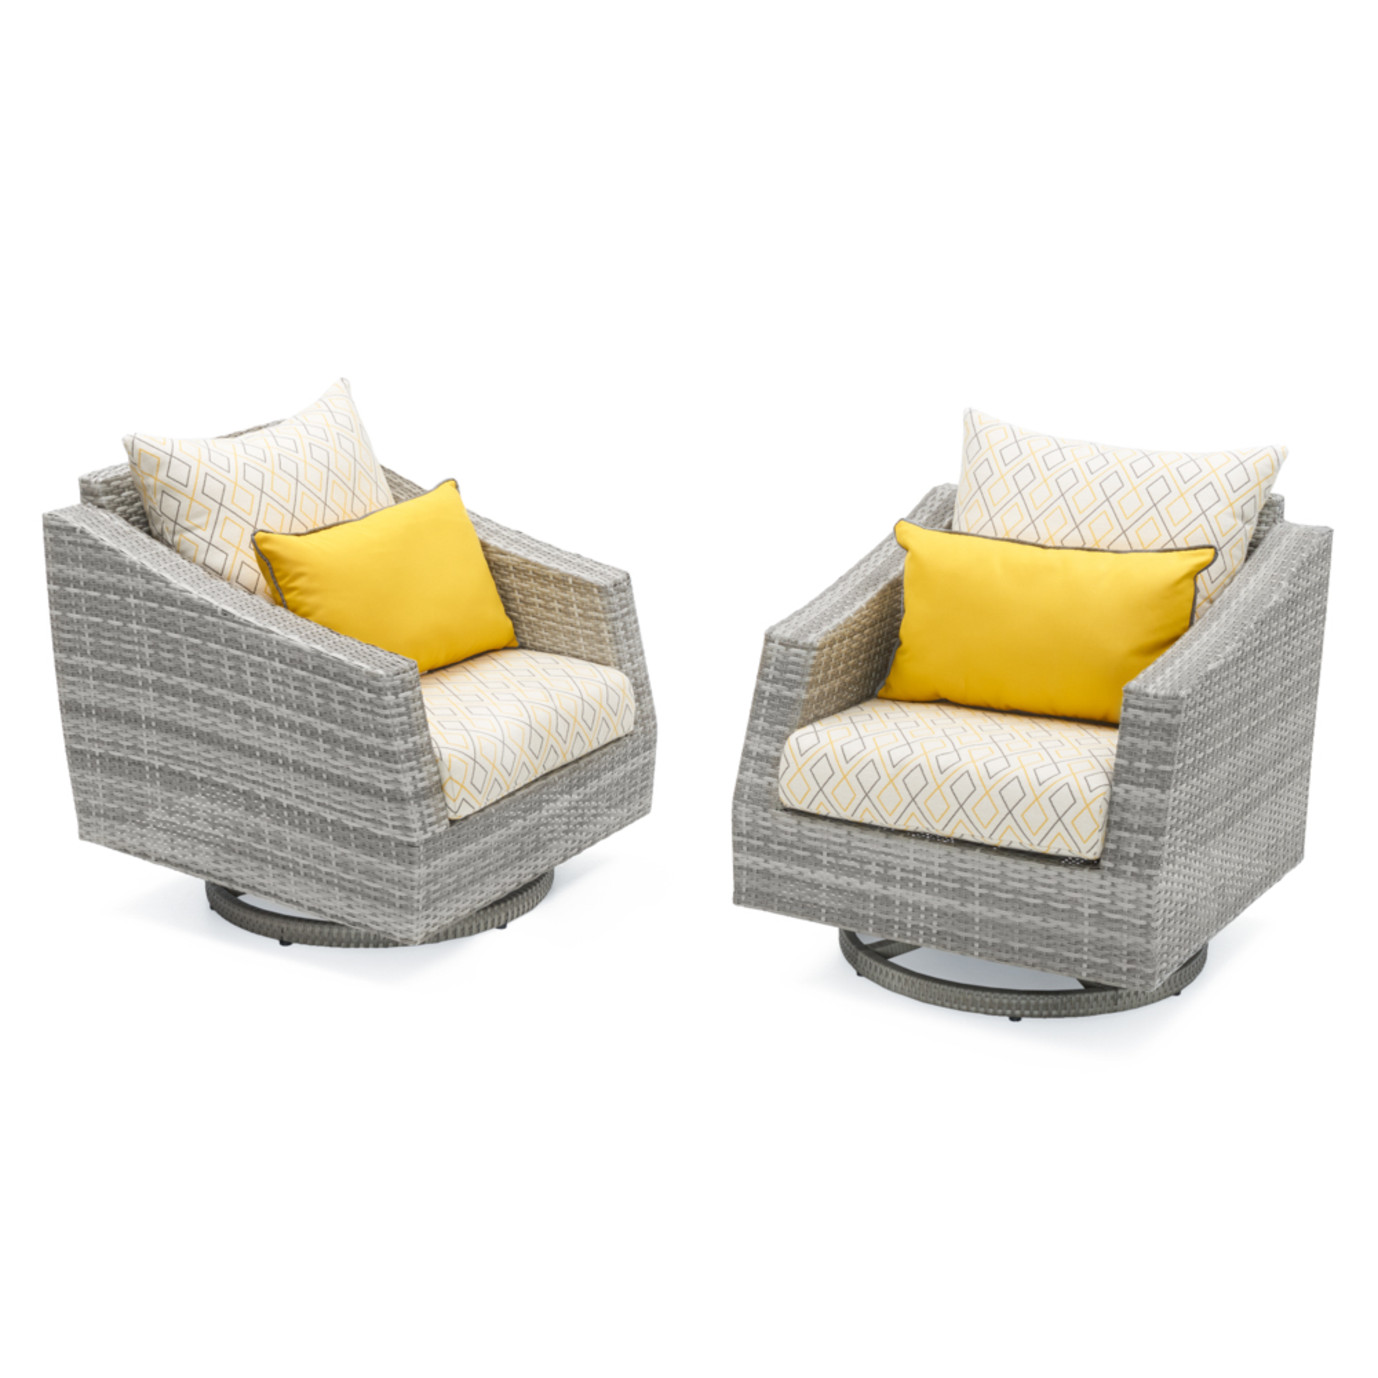 Cannes™ Deluxe Set of 2 Motion Club Chairs - Sunflower Yellow